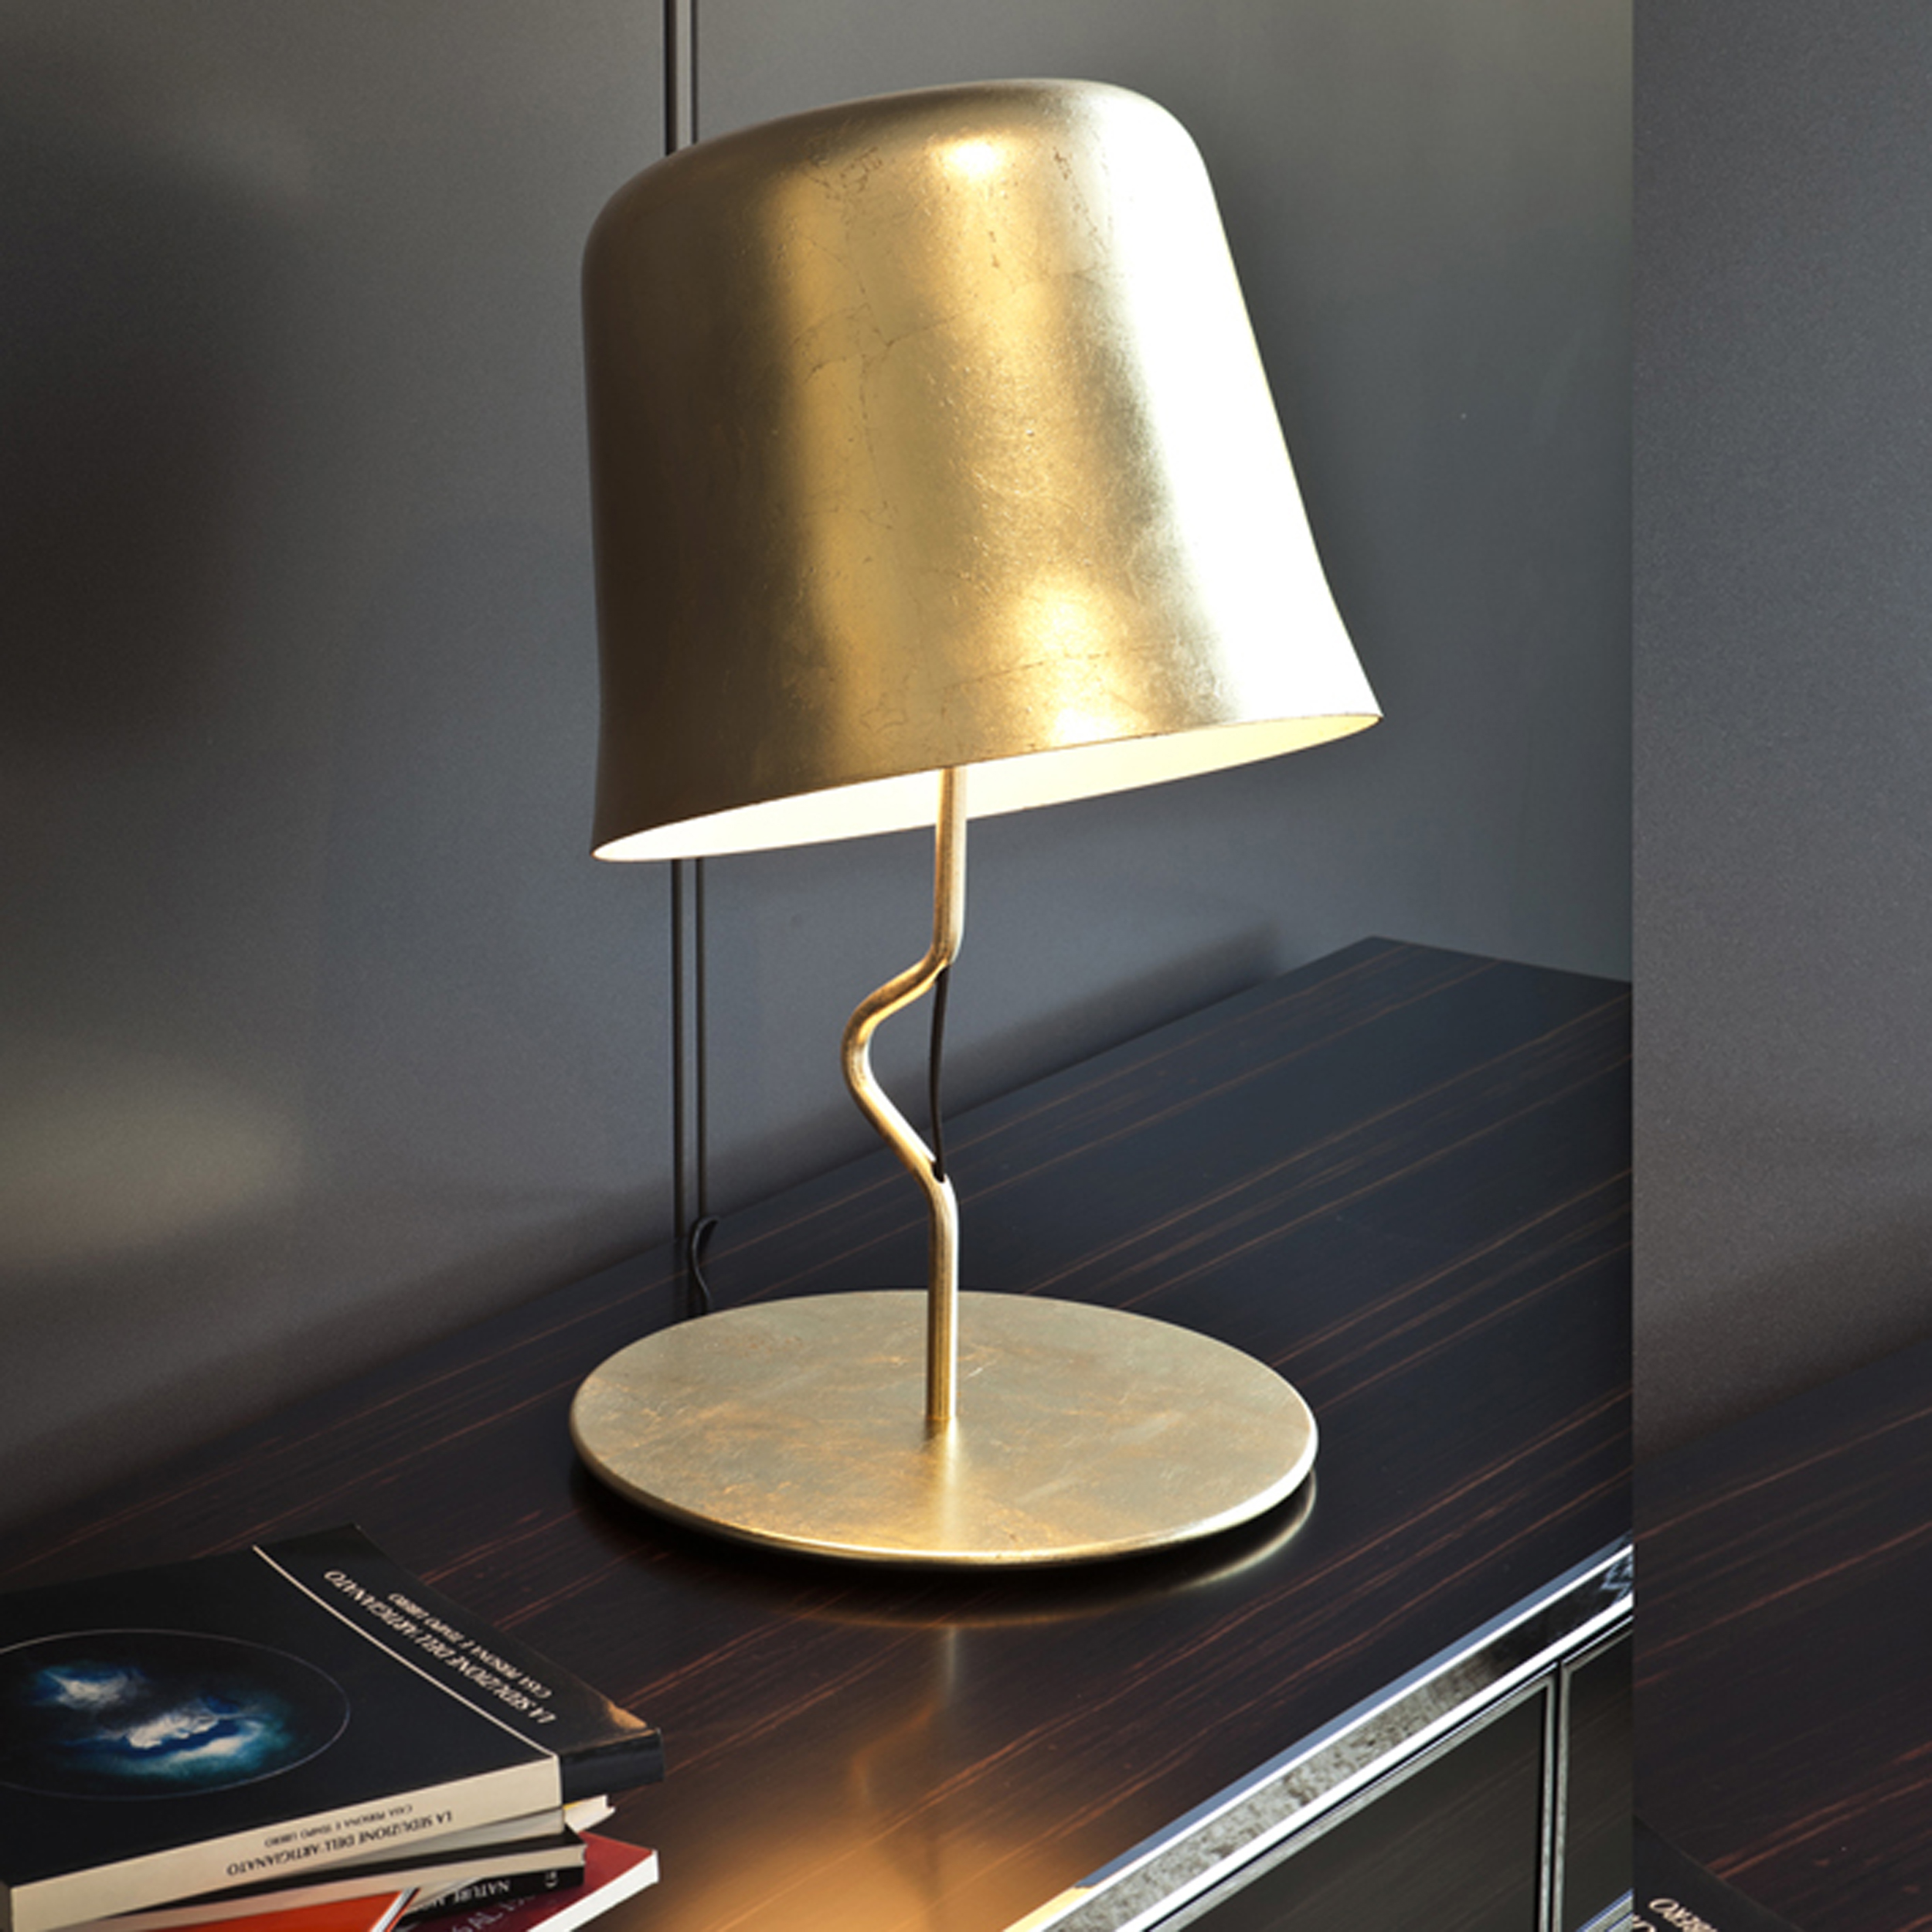 Contardi Agata Ap Wall Light Gold Leaf C